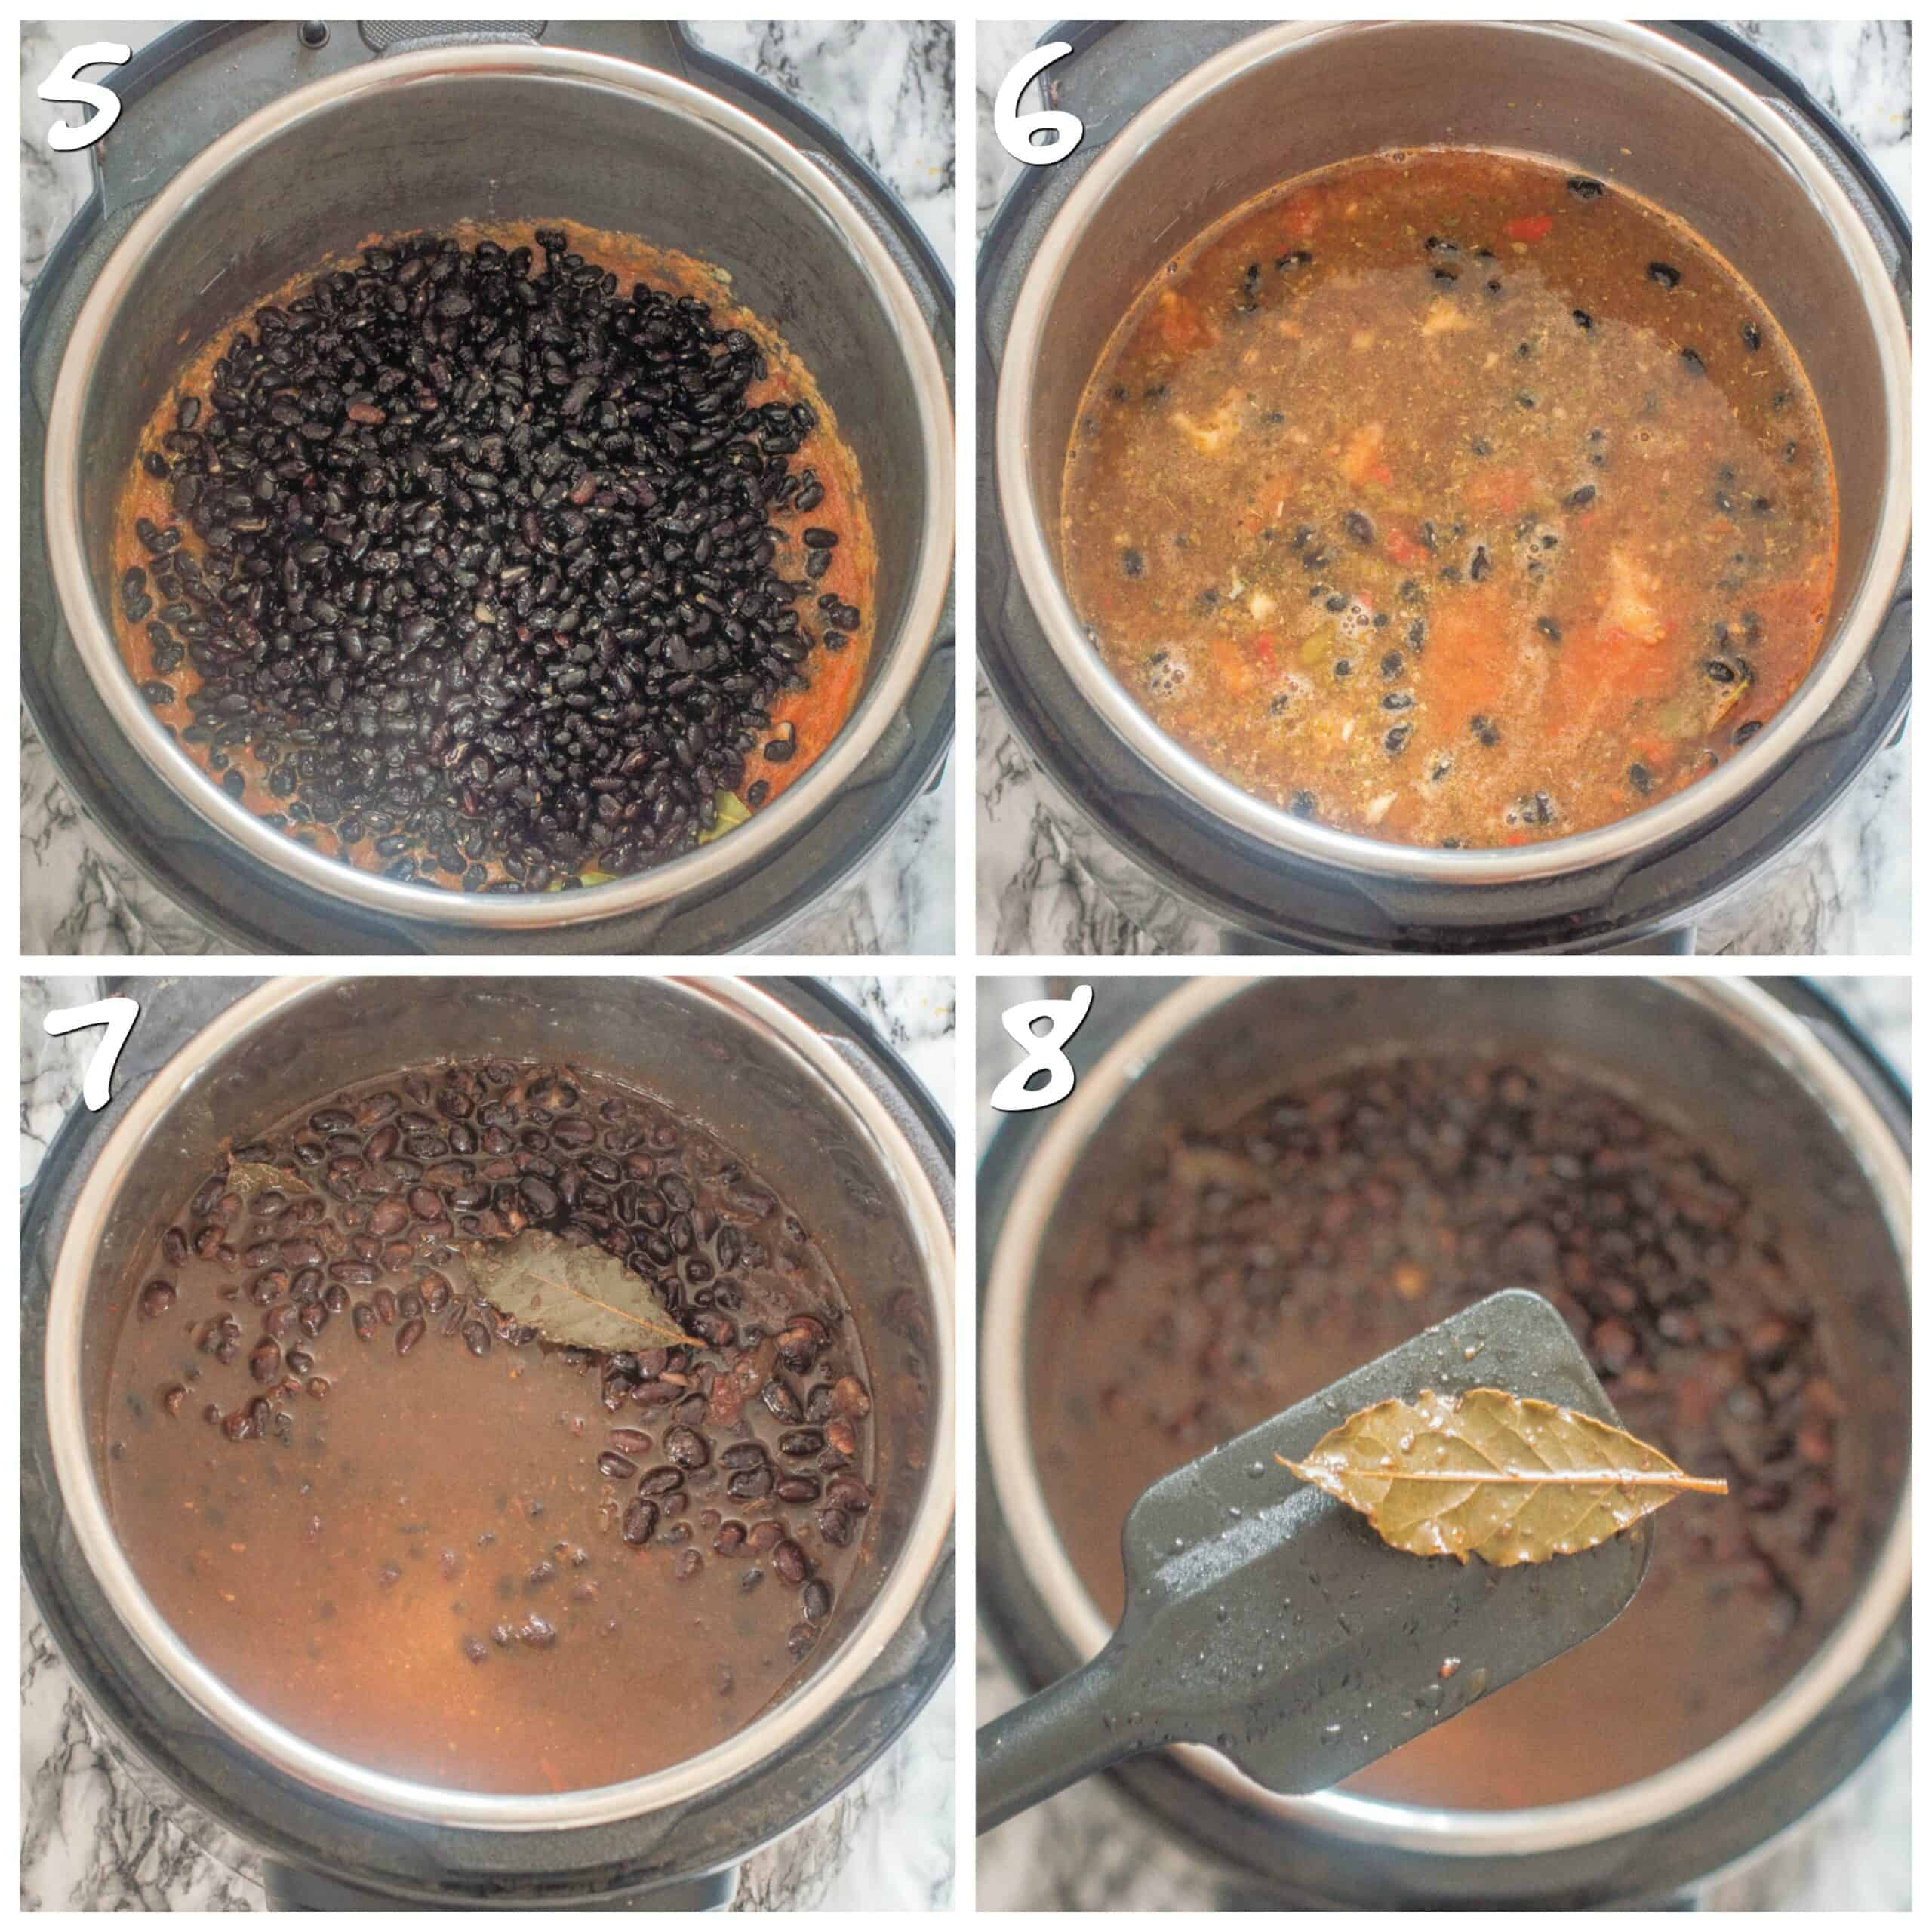 steps 5-8 cooking the black beans and removing the bay leaf